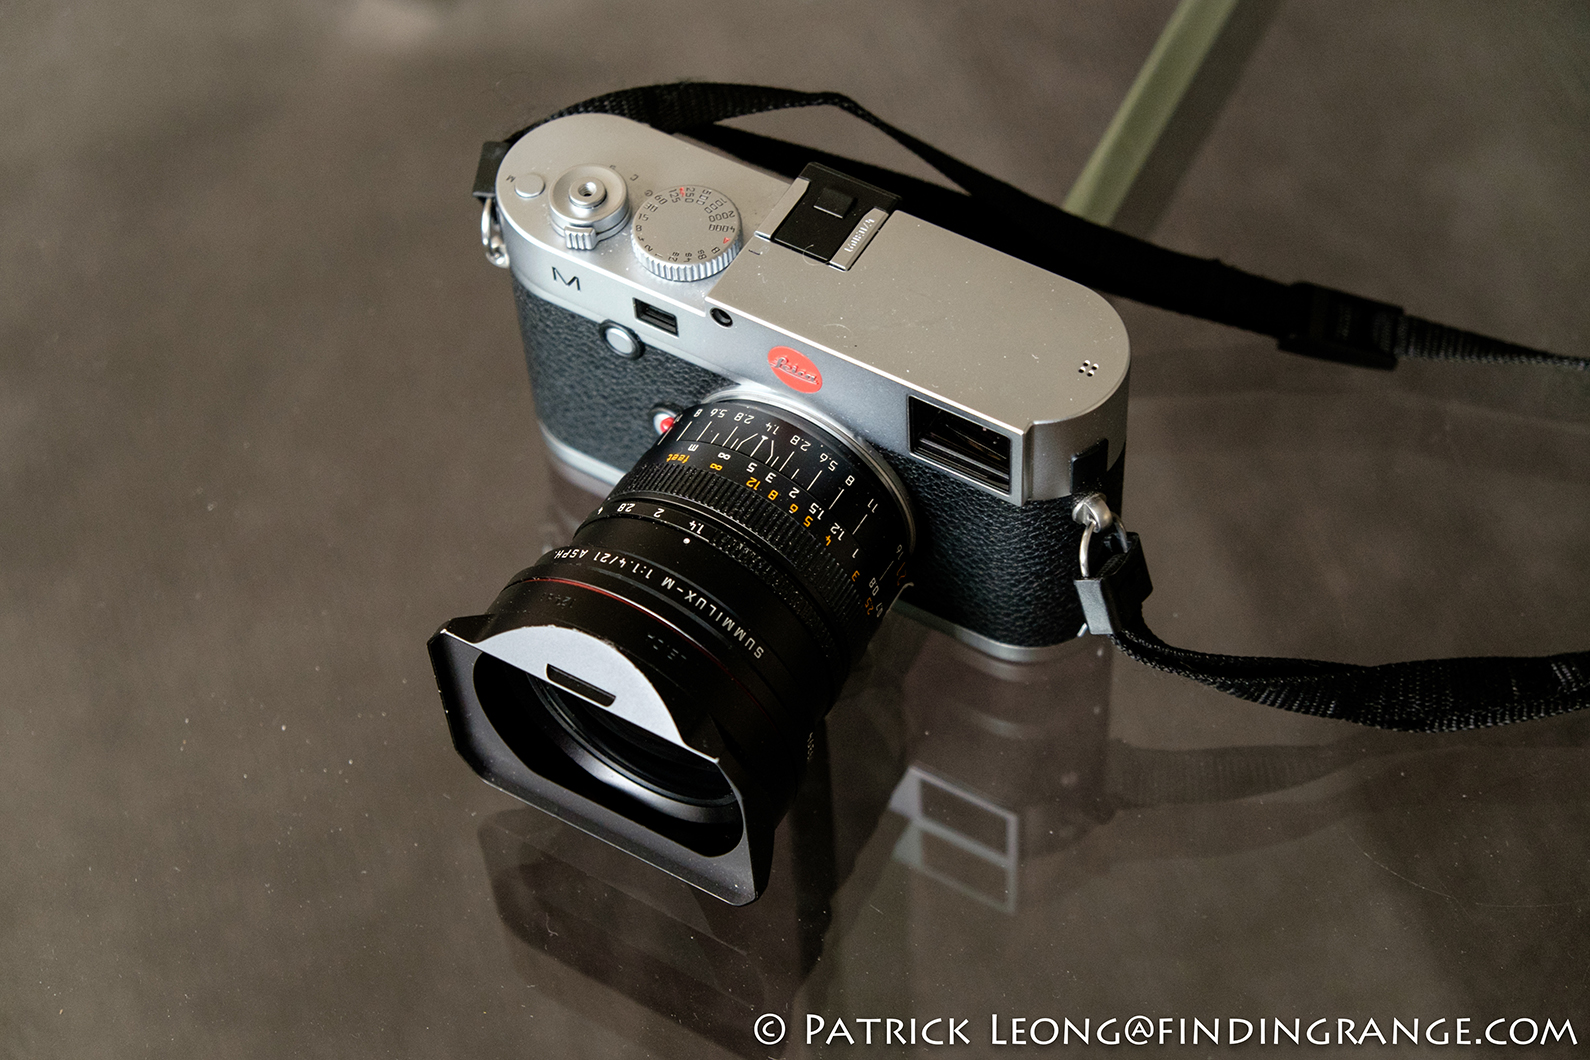 Leica 21mm Summilux ASPH Review in The Works